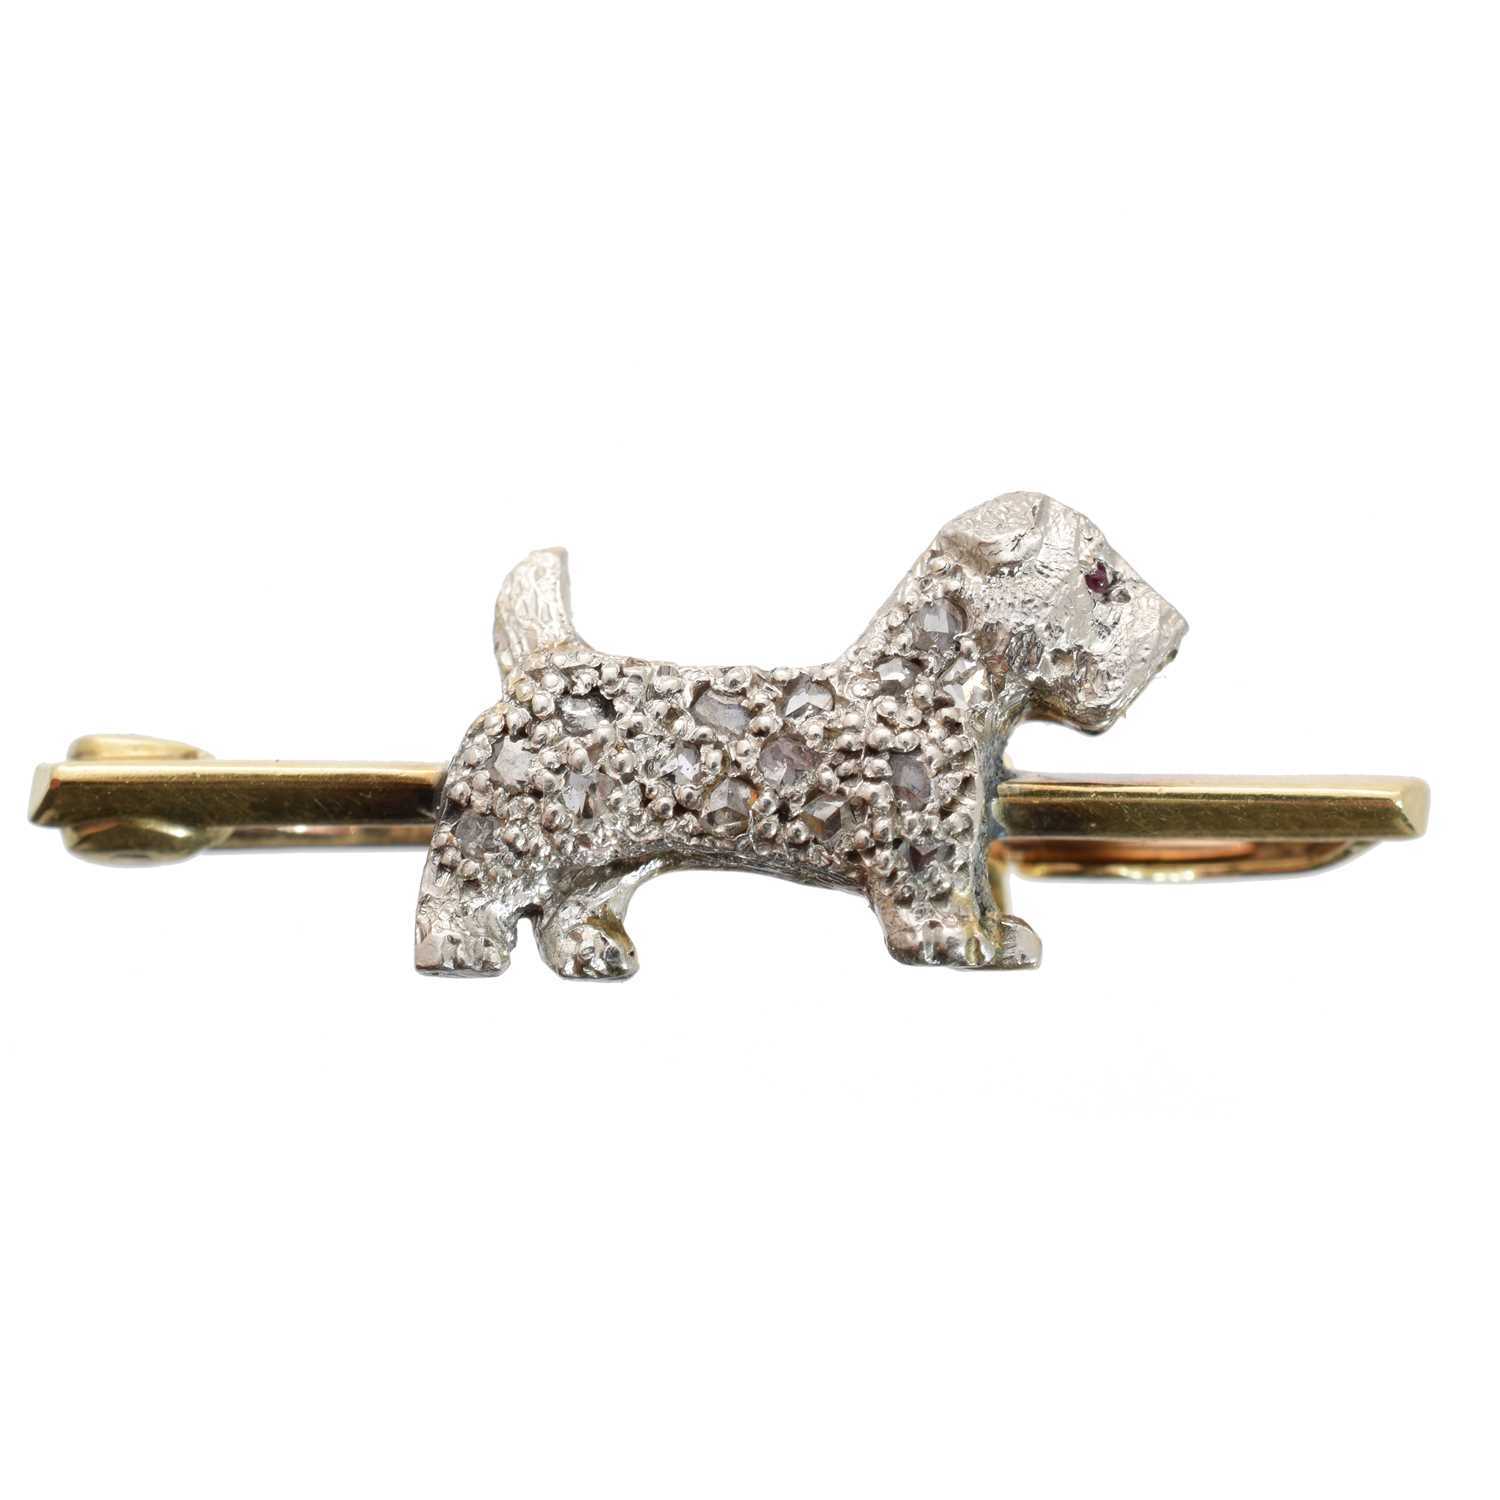 Lot -A diamond dog brooch